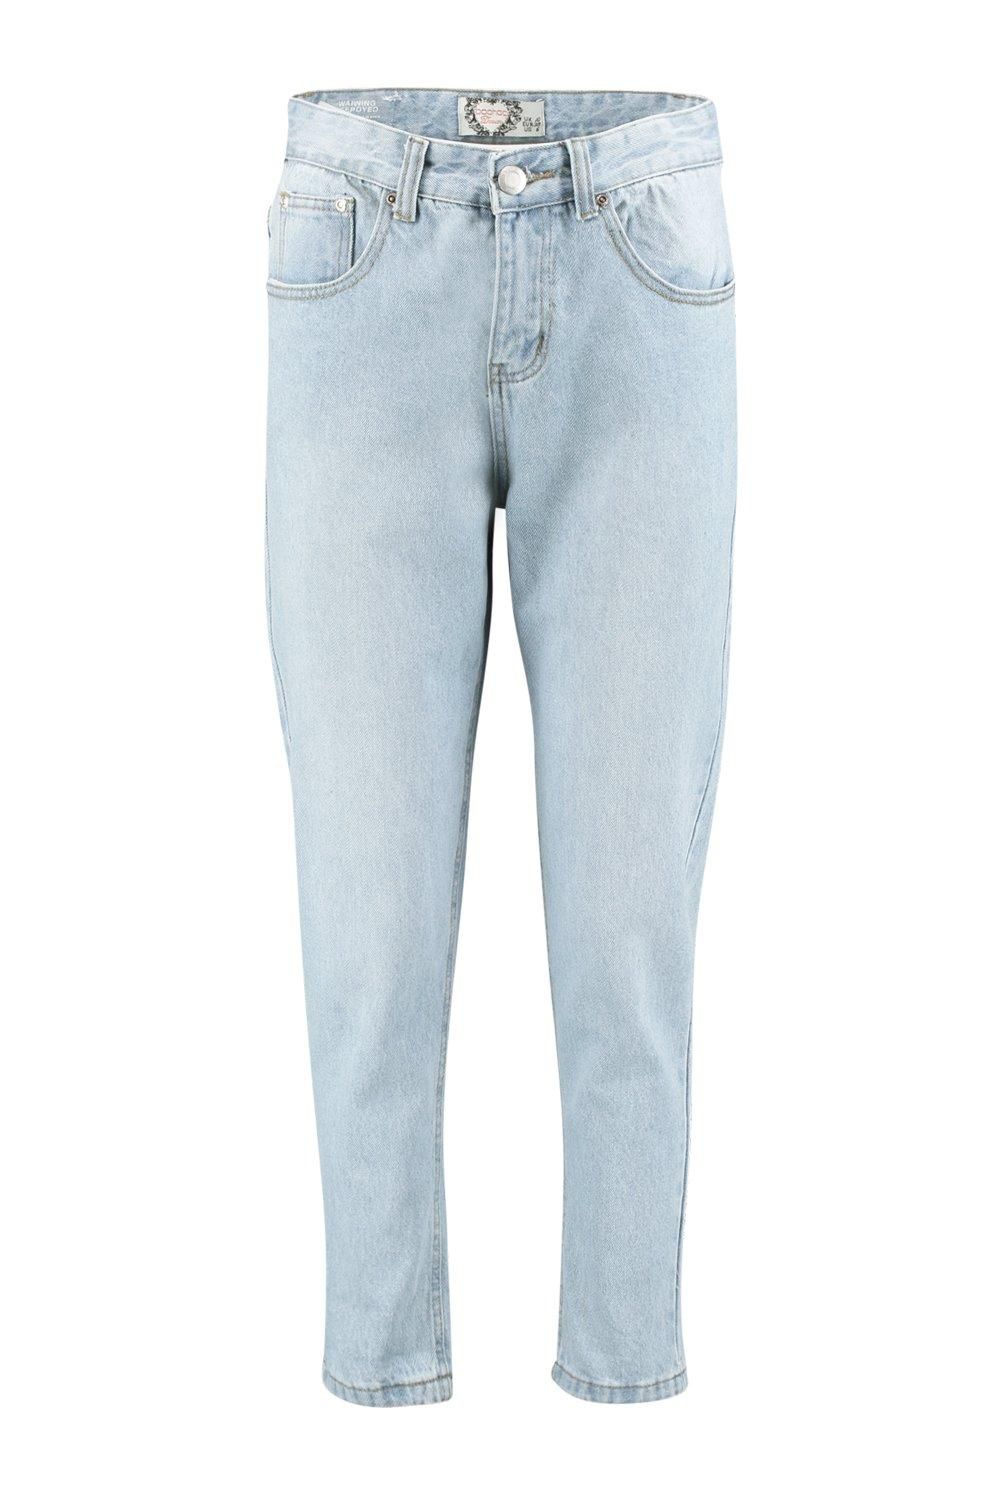 Sophie High Waisted Light Wash Mom Jeans. Hover to zoom. Close video - Sophie High Waisted Light Wash Mom Jeans Boohoo